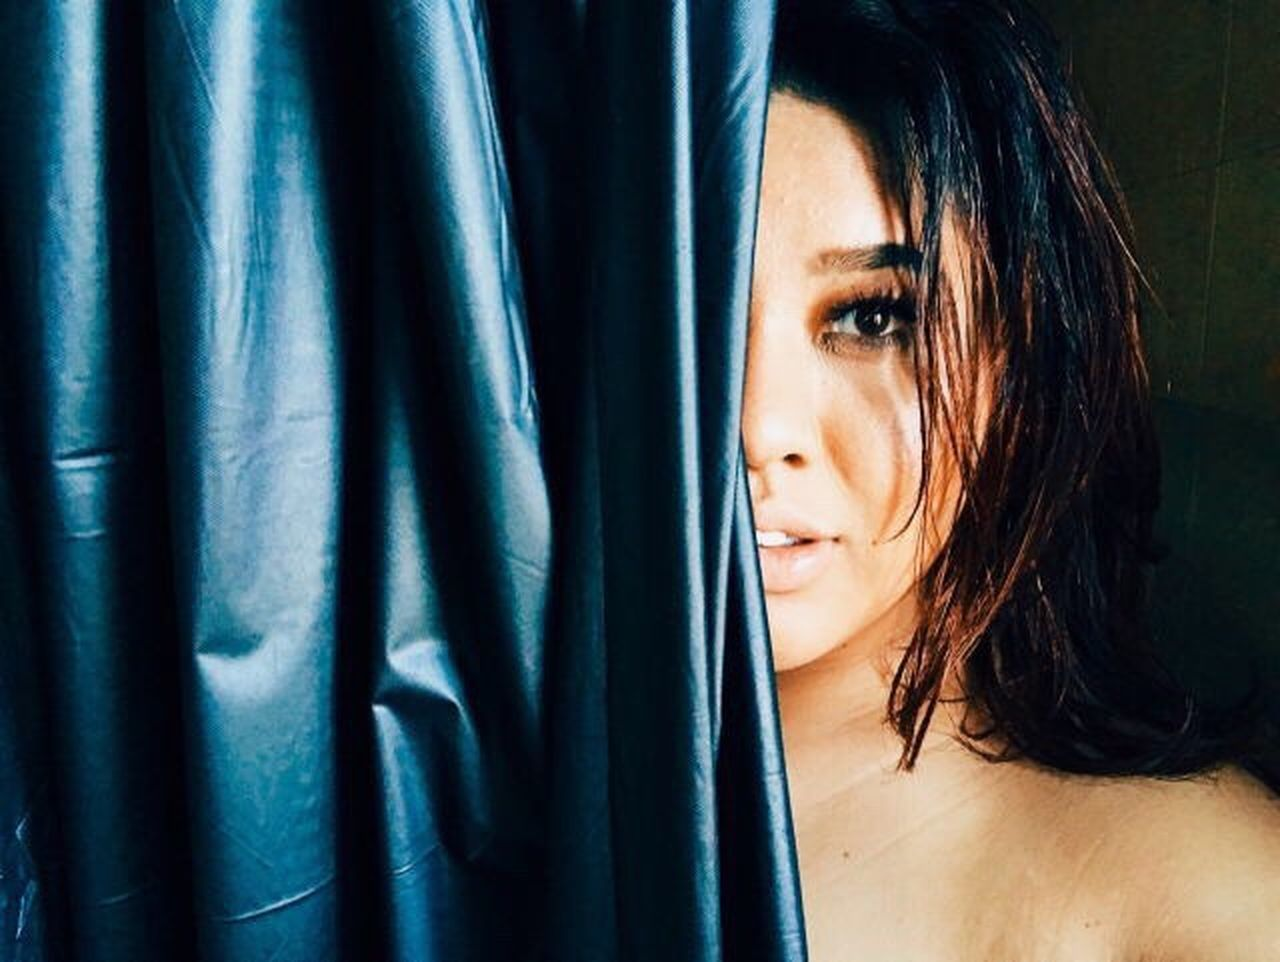 curtain, window, beautiful woman, one person, indoors, drapes, young adult, close-up, young women, beauty, only women, day, adult, adults only, people